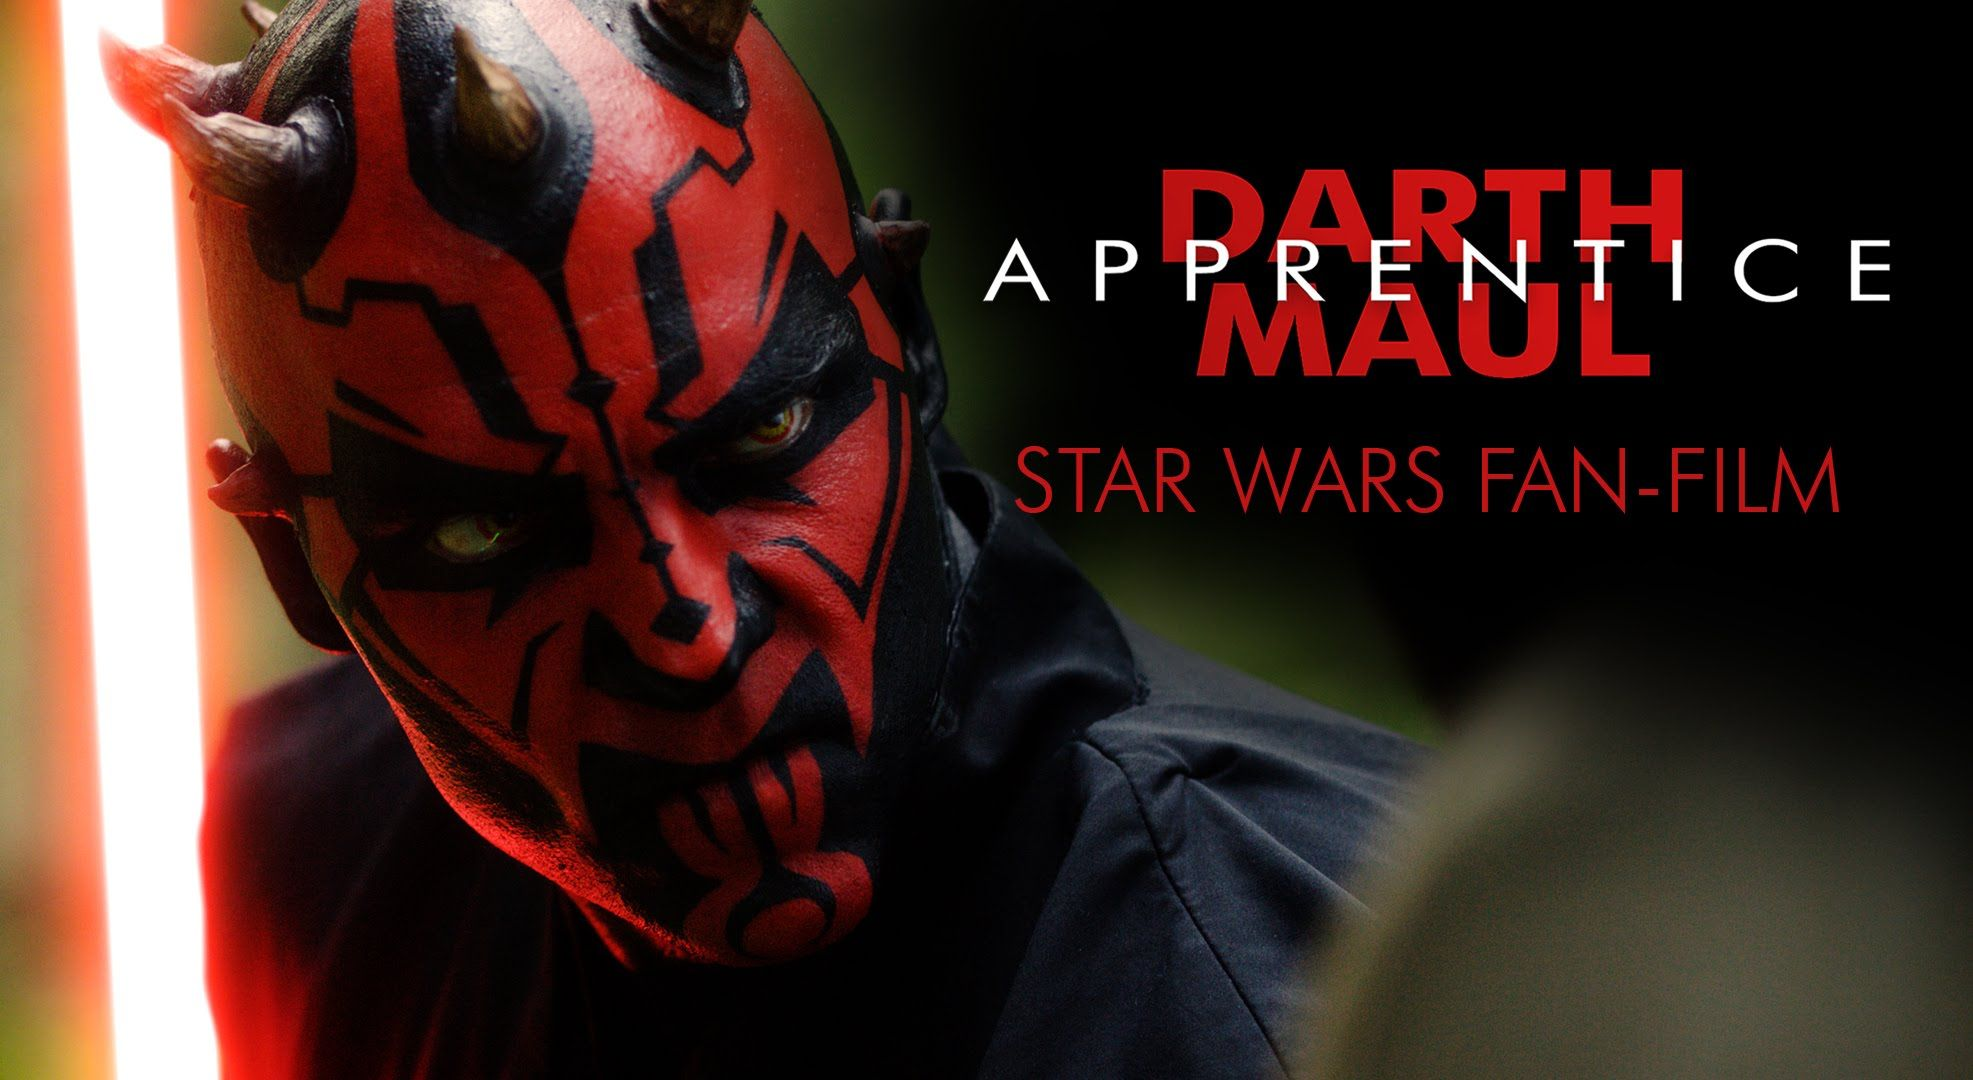 http://www.neozone.org/videos/star-wars-un-fan-film-sur-darth-maul/